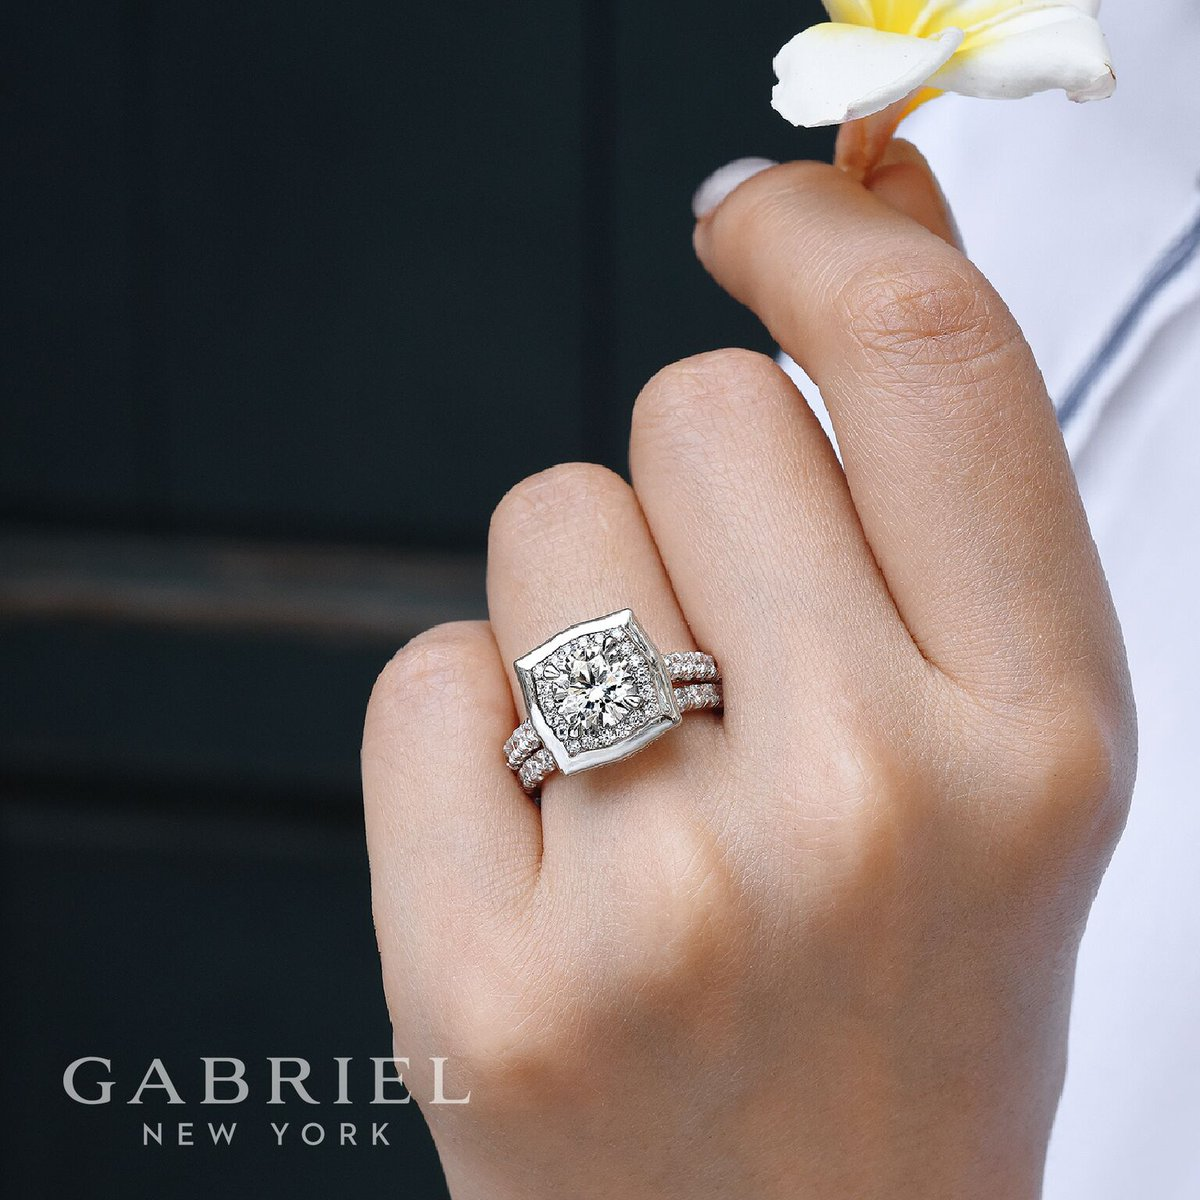 Dark Wedding Day Diamonds On Are No Rules When It Comes Toengagement Ring Working Wedding Day Diamonds On Are No Rules When It Comes Wedding Day Diamonds Roseville Wedding Day Diamonds Sale wedding diamonds Wedding Day Diamonds